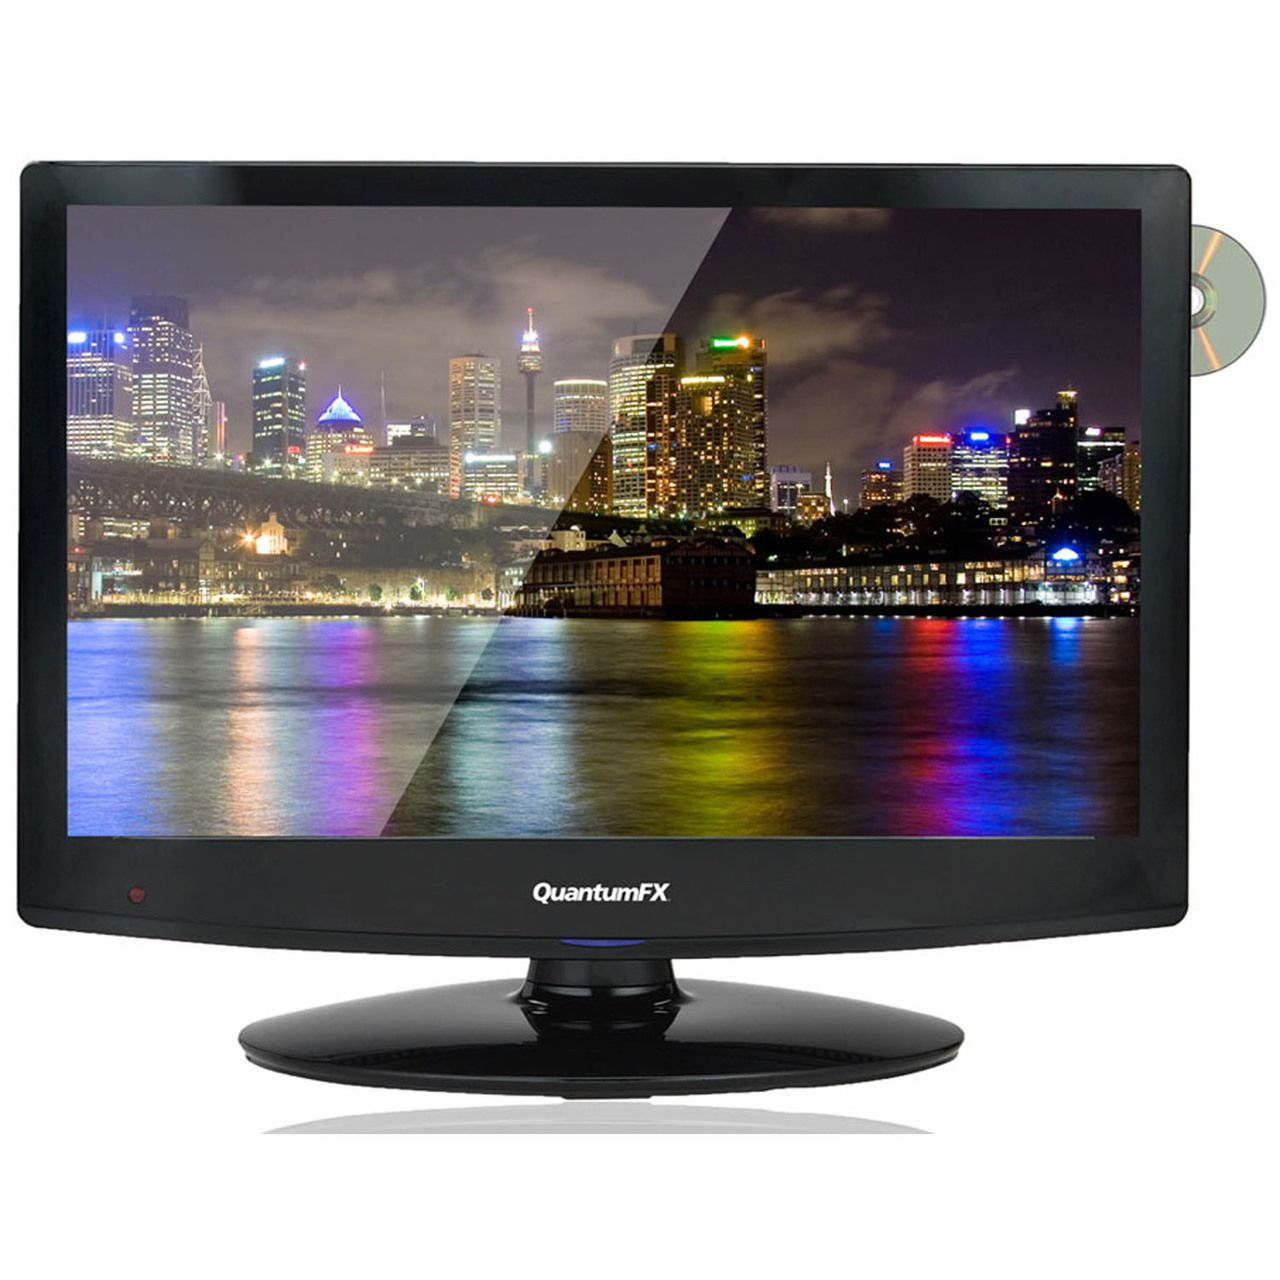 Innovative Buyz Store Quantumfx 22 Inch Quantumfx Tv Led2212d 12 Volt Ac Dc Led 1080p Hdtv W Dvd Mggtv Led2212d 299 99 Htt Digital Tuner Led Tv Hdtv